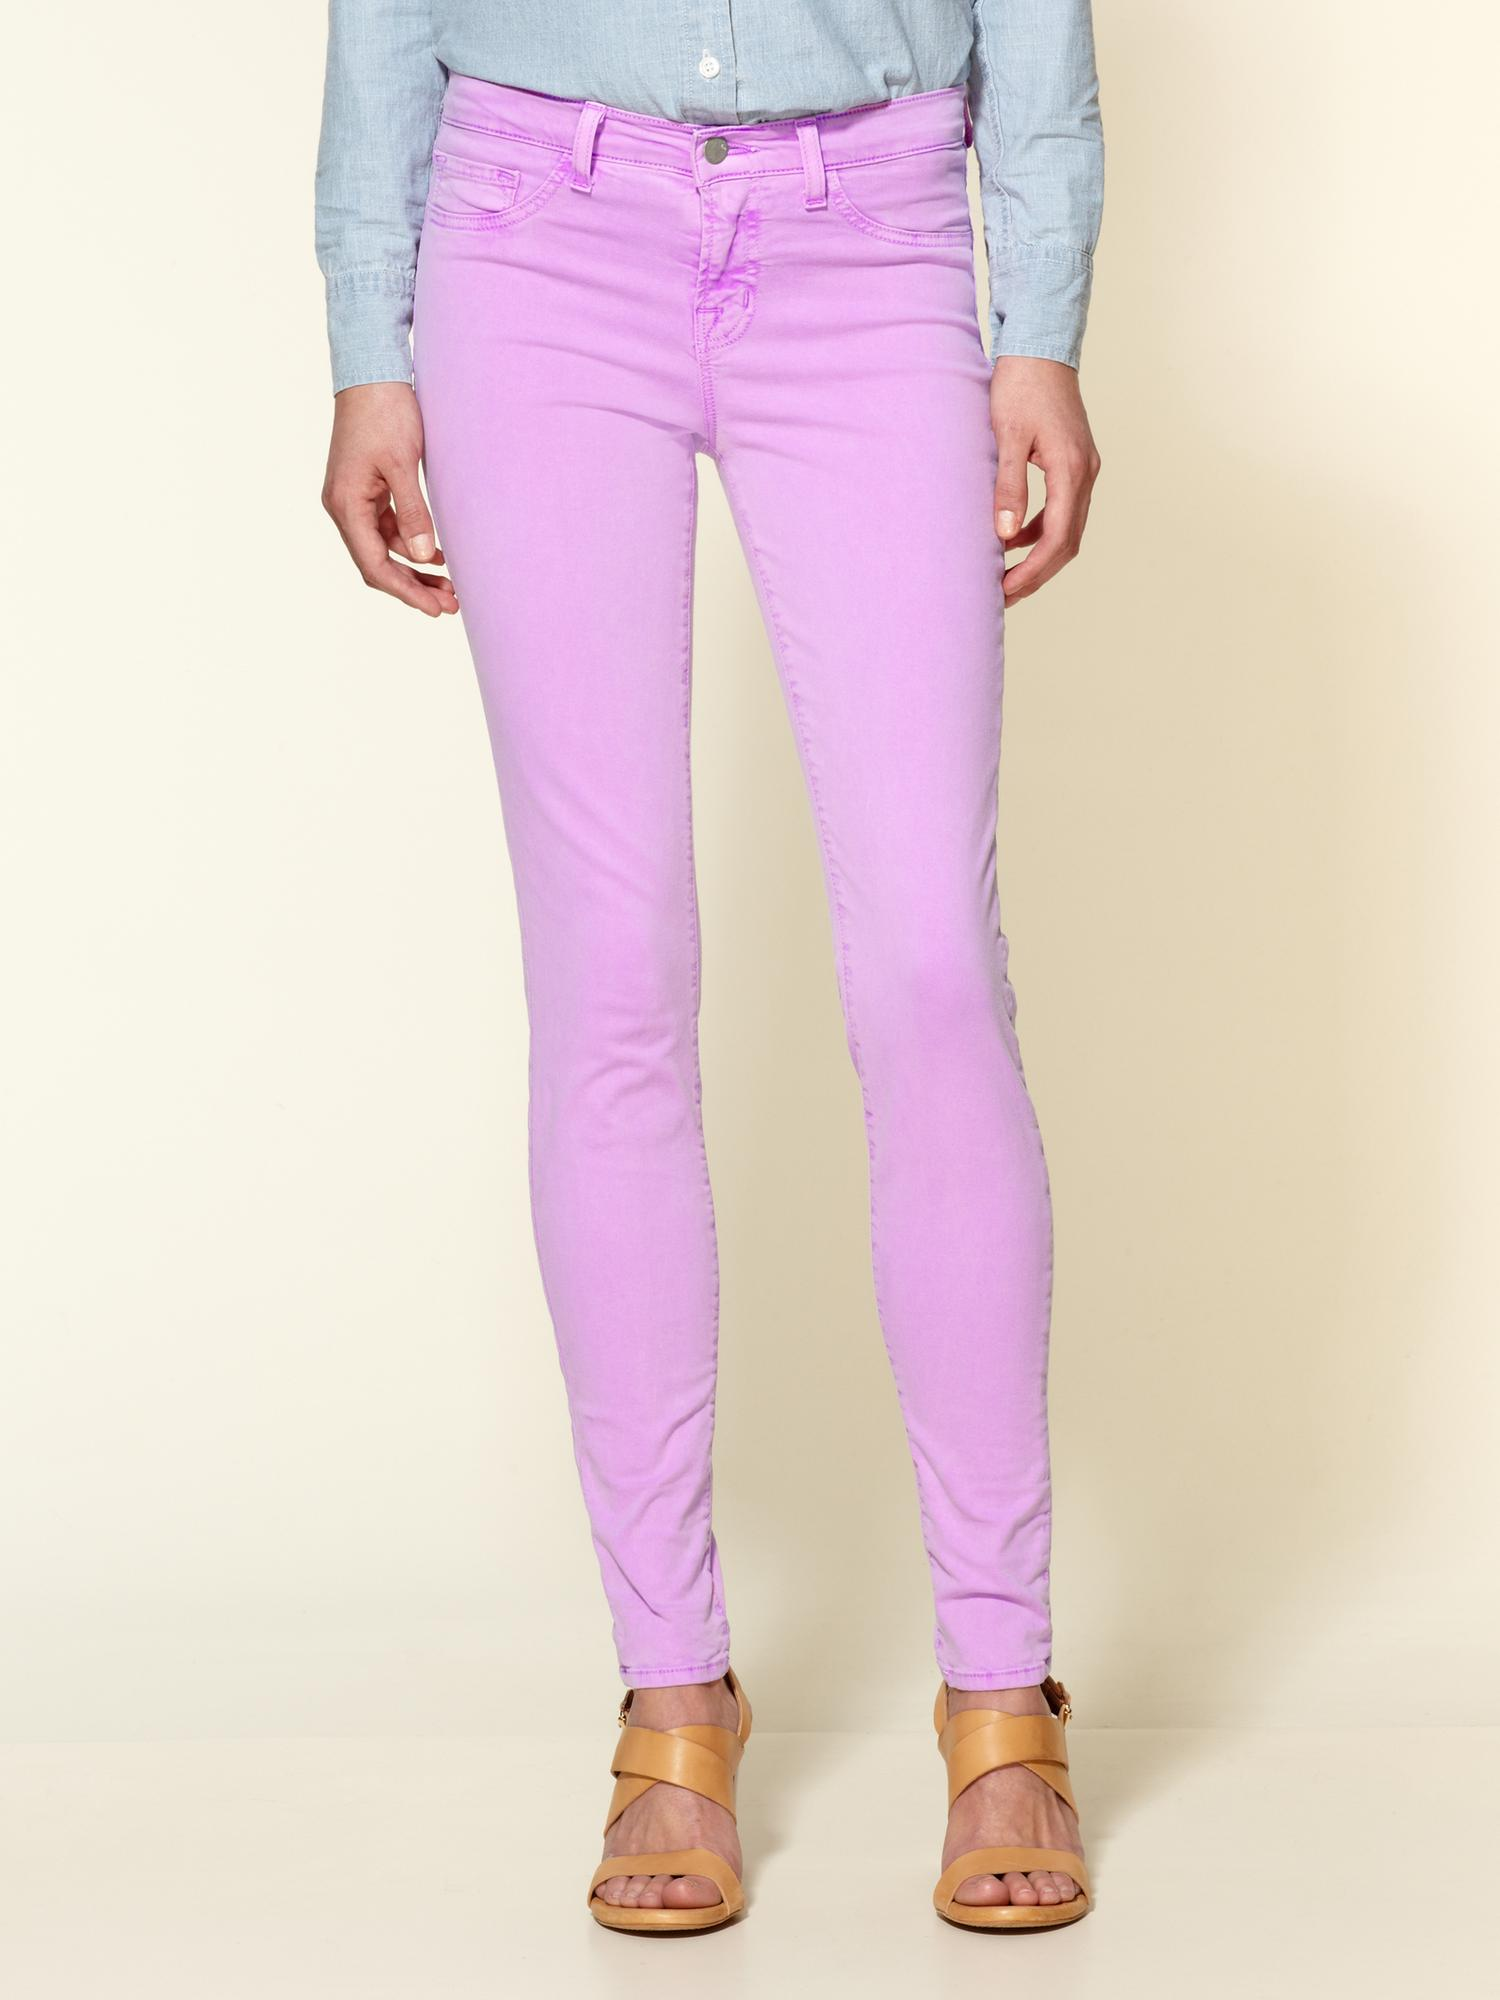 j brand 811 mid rise skinny jeans in purple neon purple. Black Bedroom Furniture Sets. Home Design Ideas